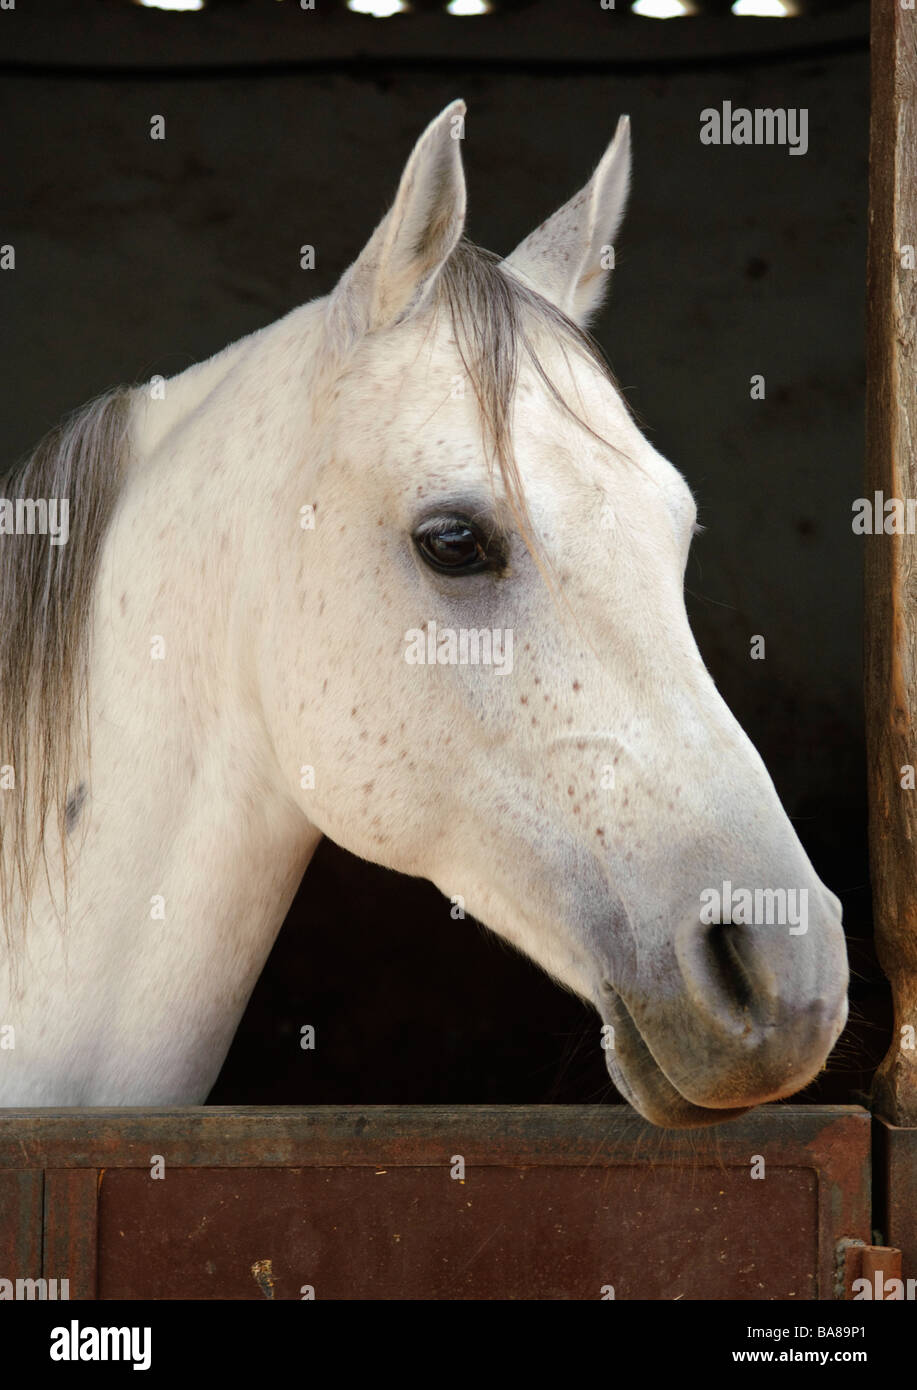 Grey horse in a stable - Stock Image